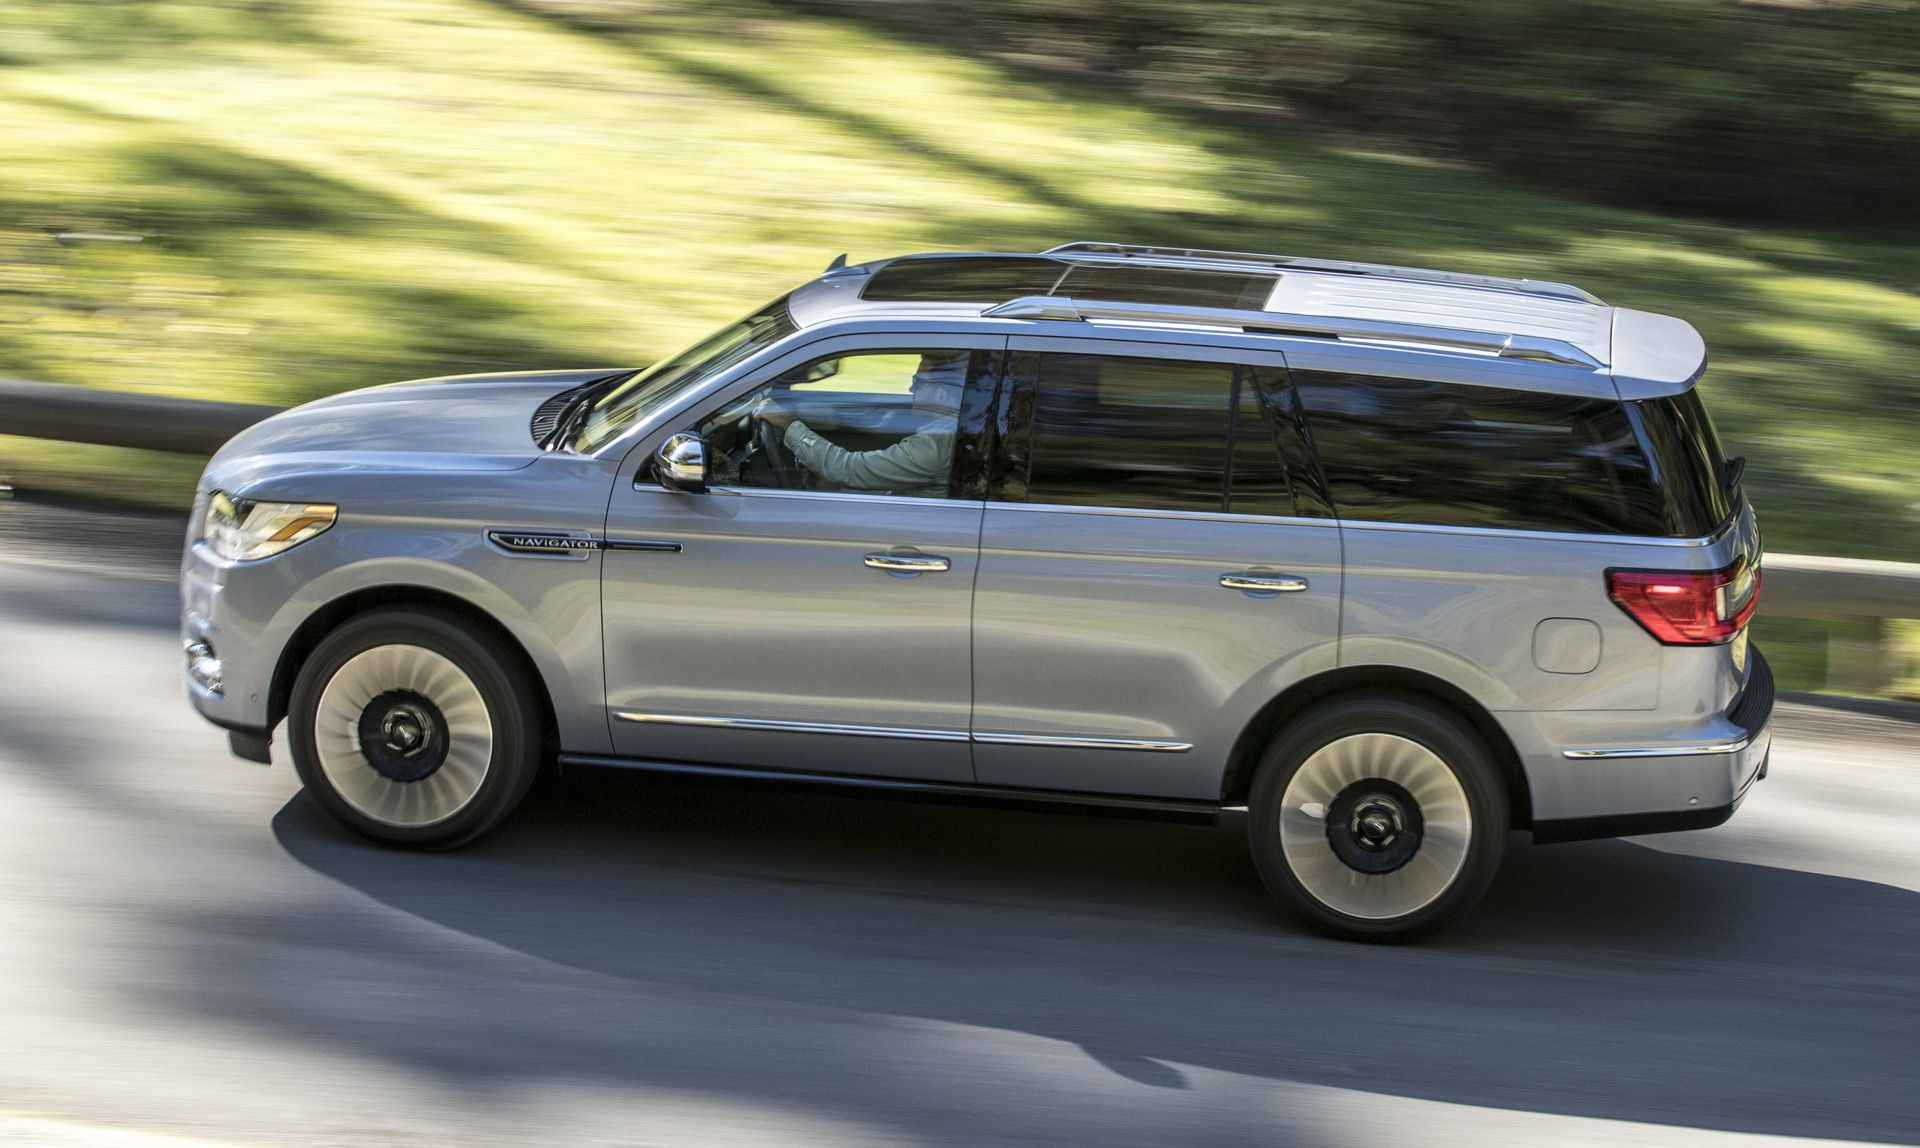 2018 lincoln 2 door.  door lincolnu0027s fullsize luxury suv has a price tag the 2018 lincoln navigator  will intended lincoln 2 door